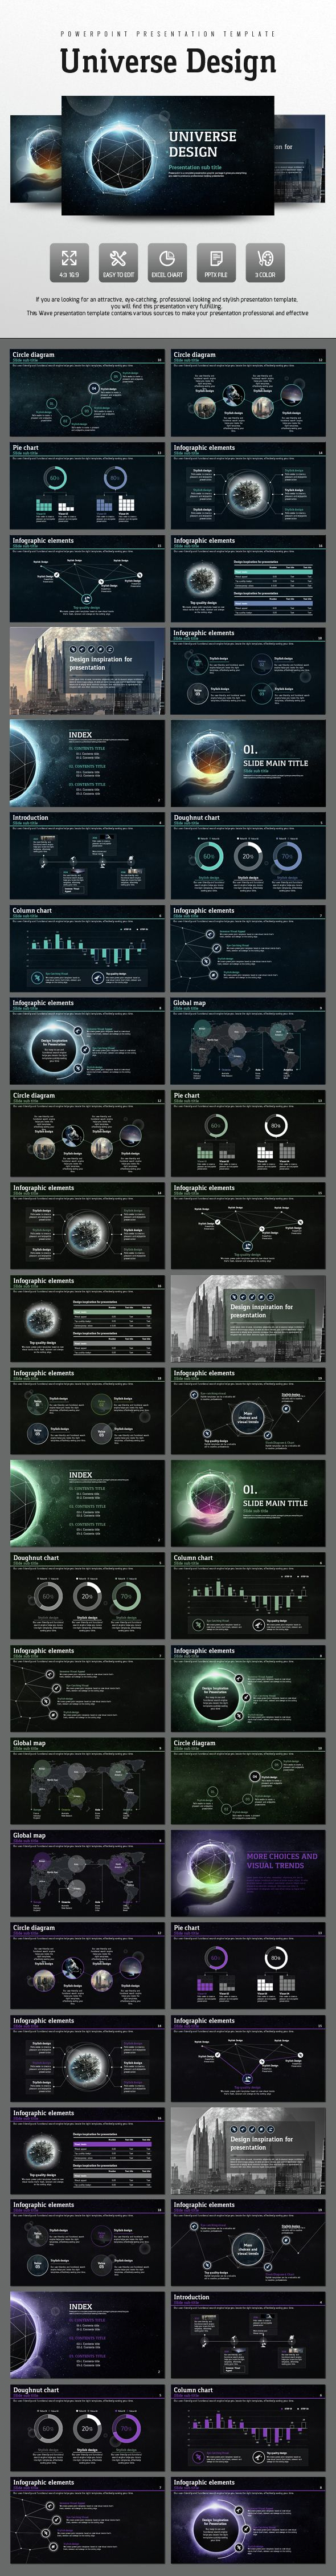 Universe Design (PowerPoint Templates)                                                                                                                                                      もっと見る